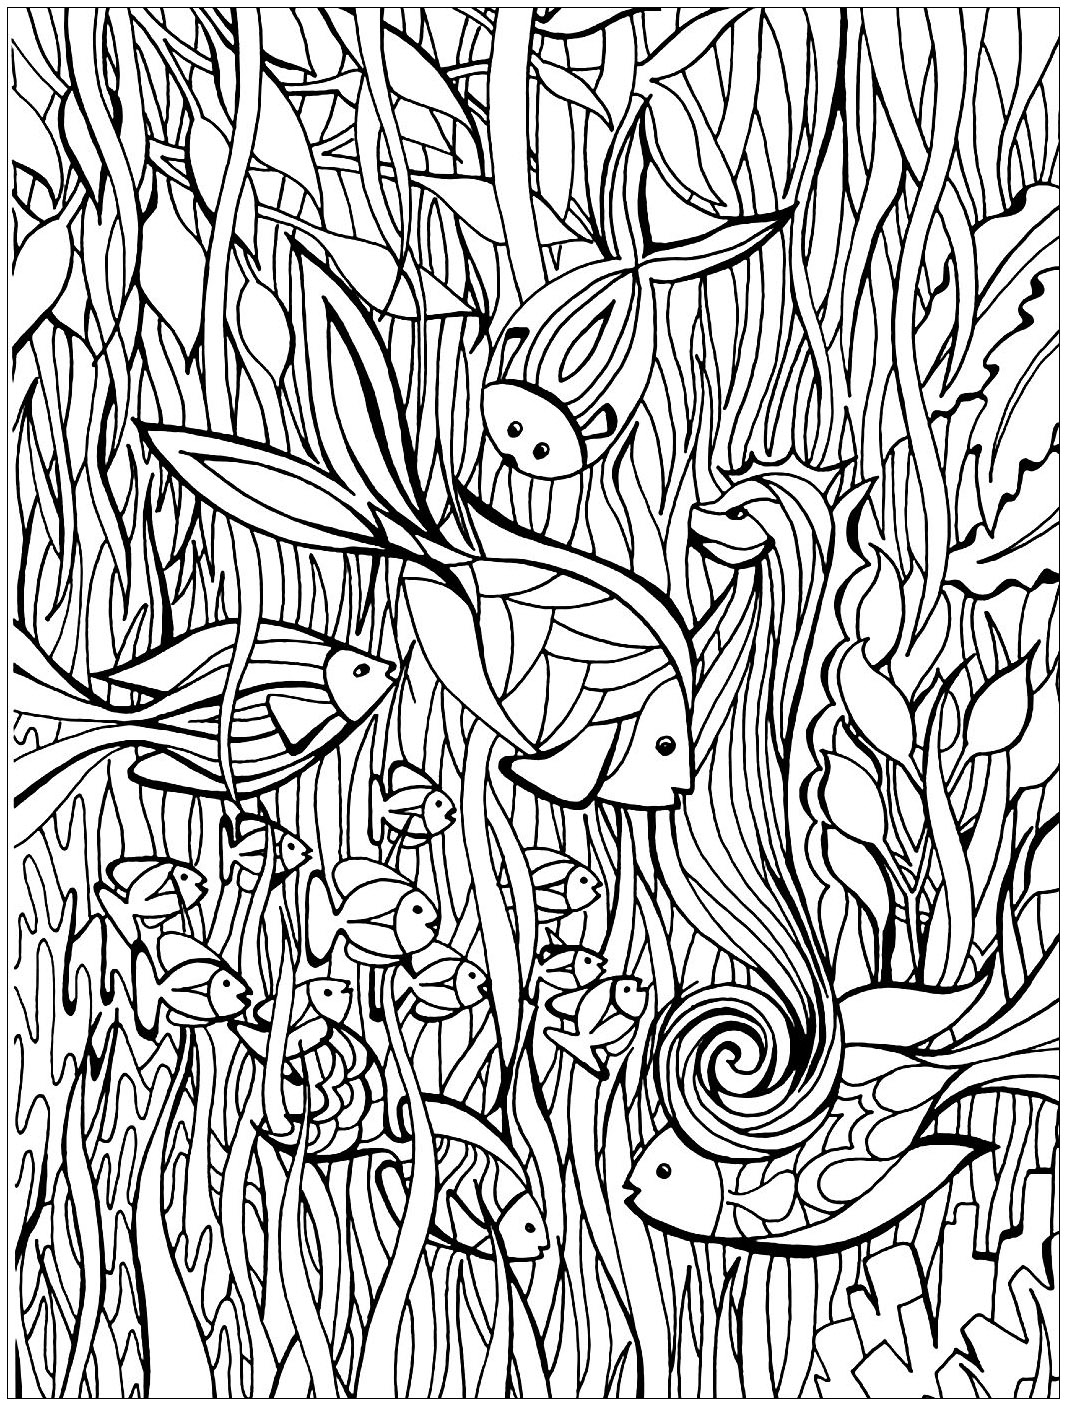 Fish Details Fishes Adult Coloring Pages